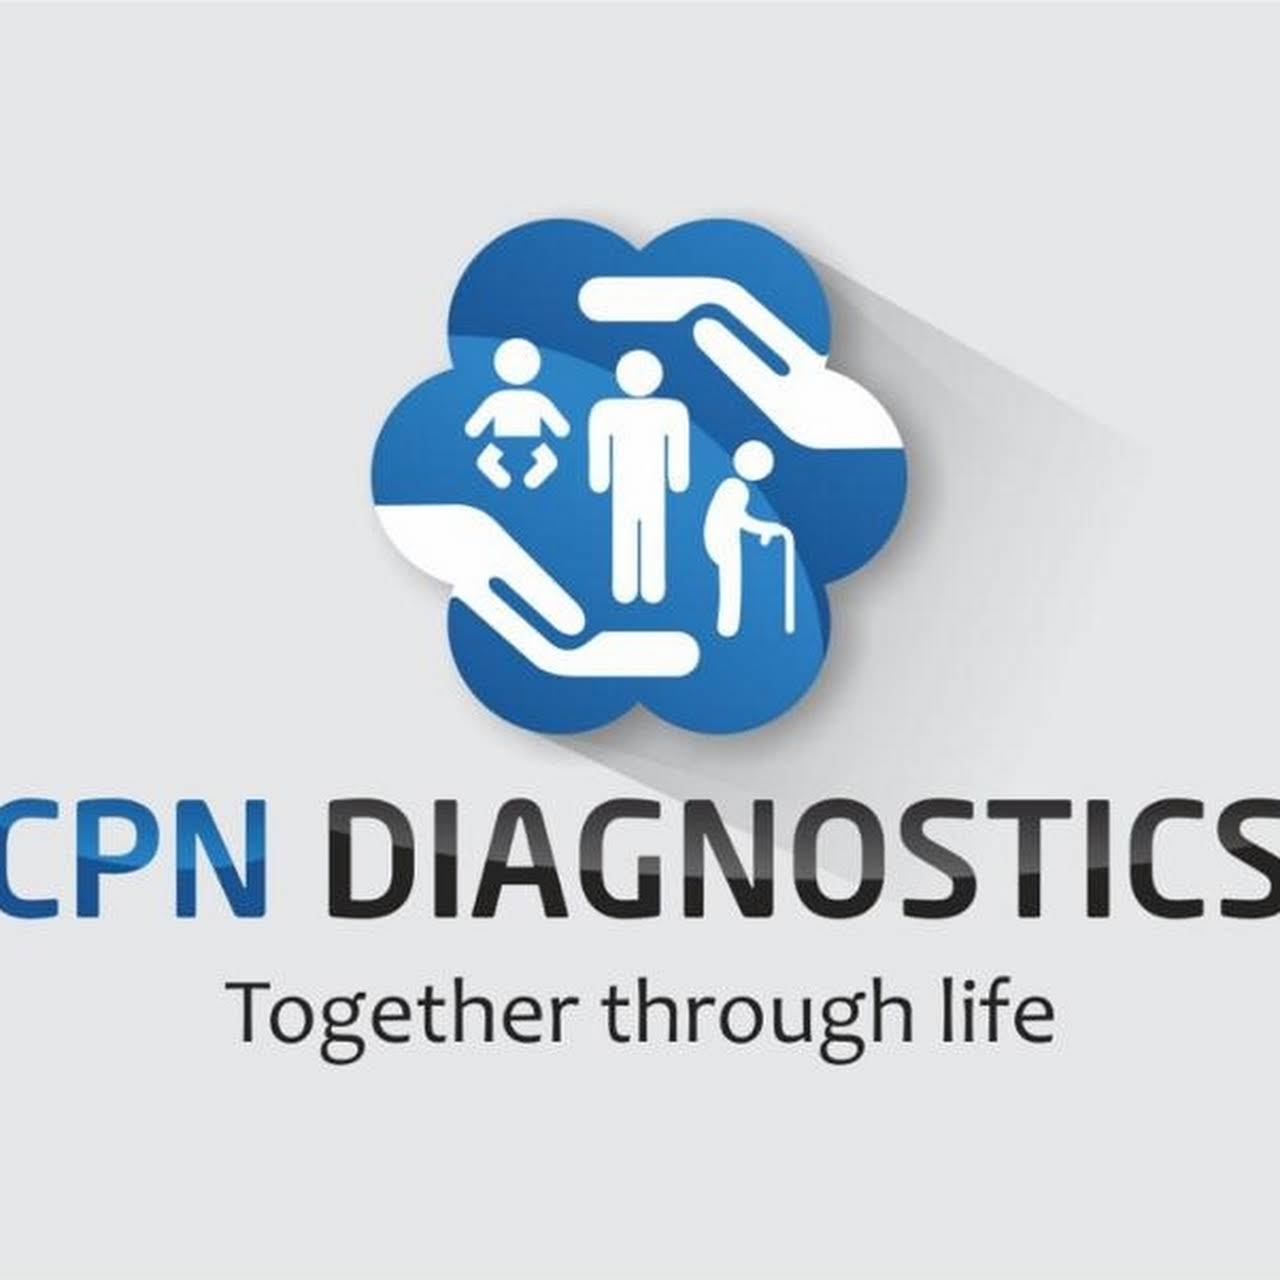 CPN Diagnostics - Medical Diagnostic Imaging Center in Rangpo